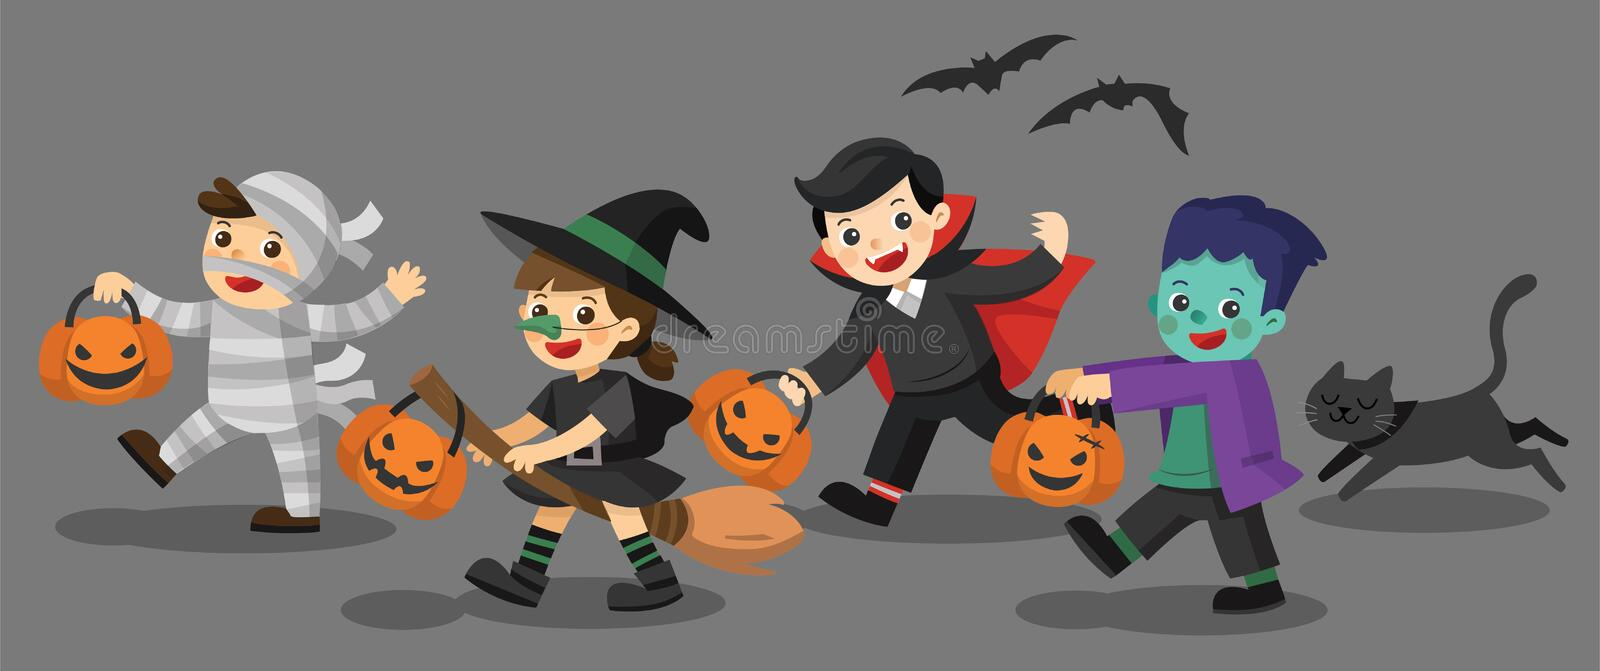 Funny children in colorful costumes and a cat. stock illustration